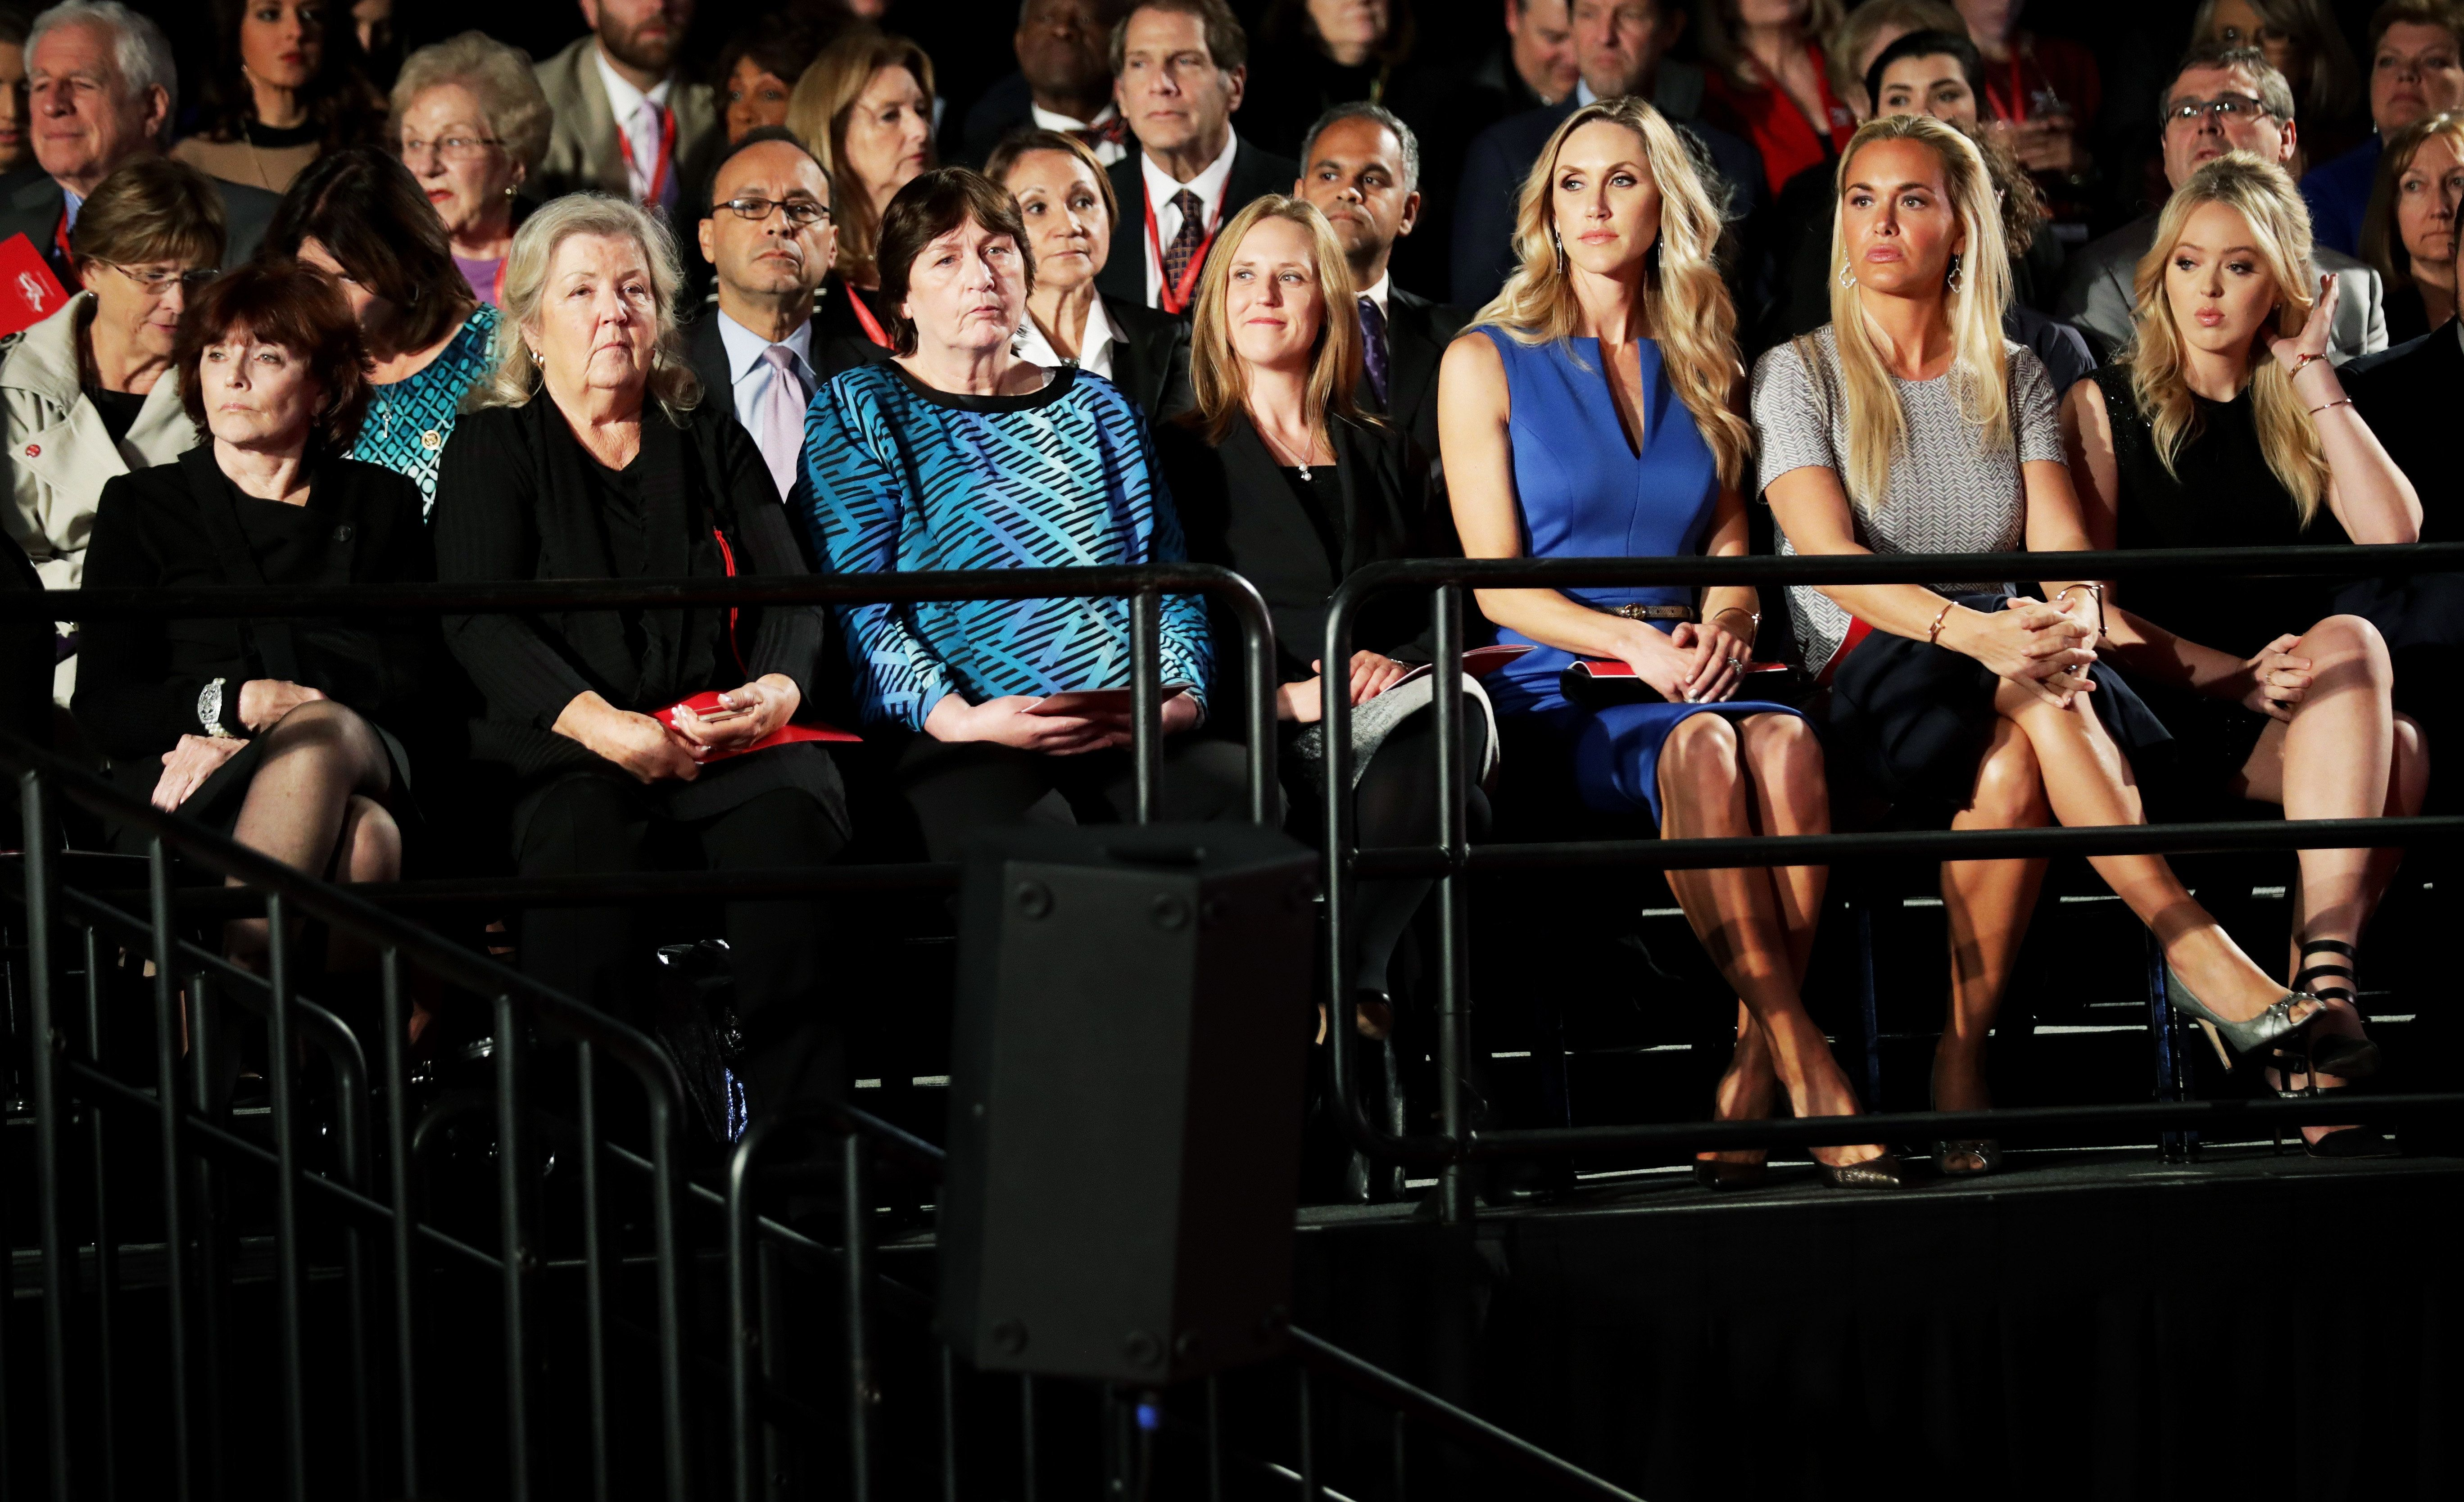 ST LOUIS, MO - OCTOBER 09:  (L-R) Kathleen Willey, Juanita Broaddrick, Kathy Shelton, a guest, Republican presidential nominee Donald Trump's daughters-in-law Lara Trump and Vanessa Trump and daughter Tiffany Trump  sit before the town hall debate at Washington University on October 9, 2016 in St Louis, Missouri. This is the second of three presidential debates scheduled prior to the November 8th election.  (Photo by Chip Somodevilla/Getty Images)